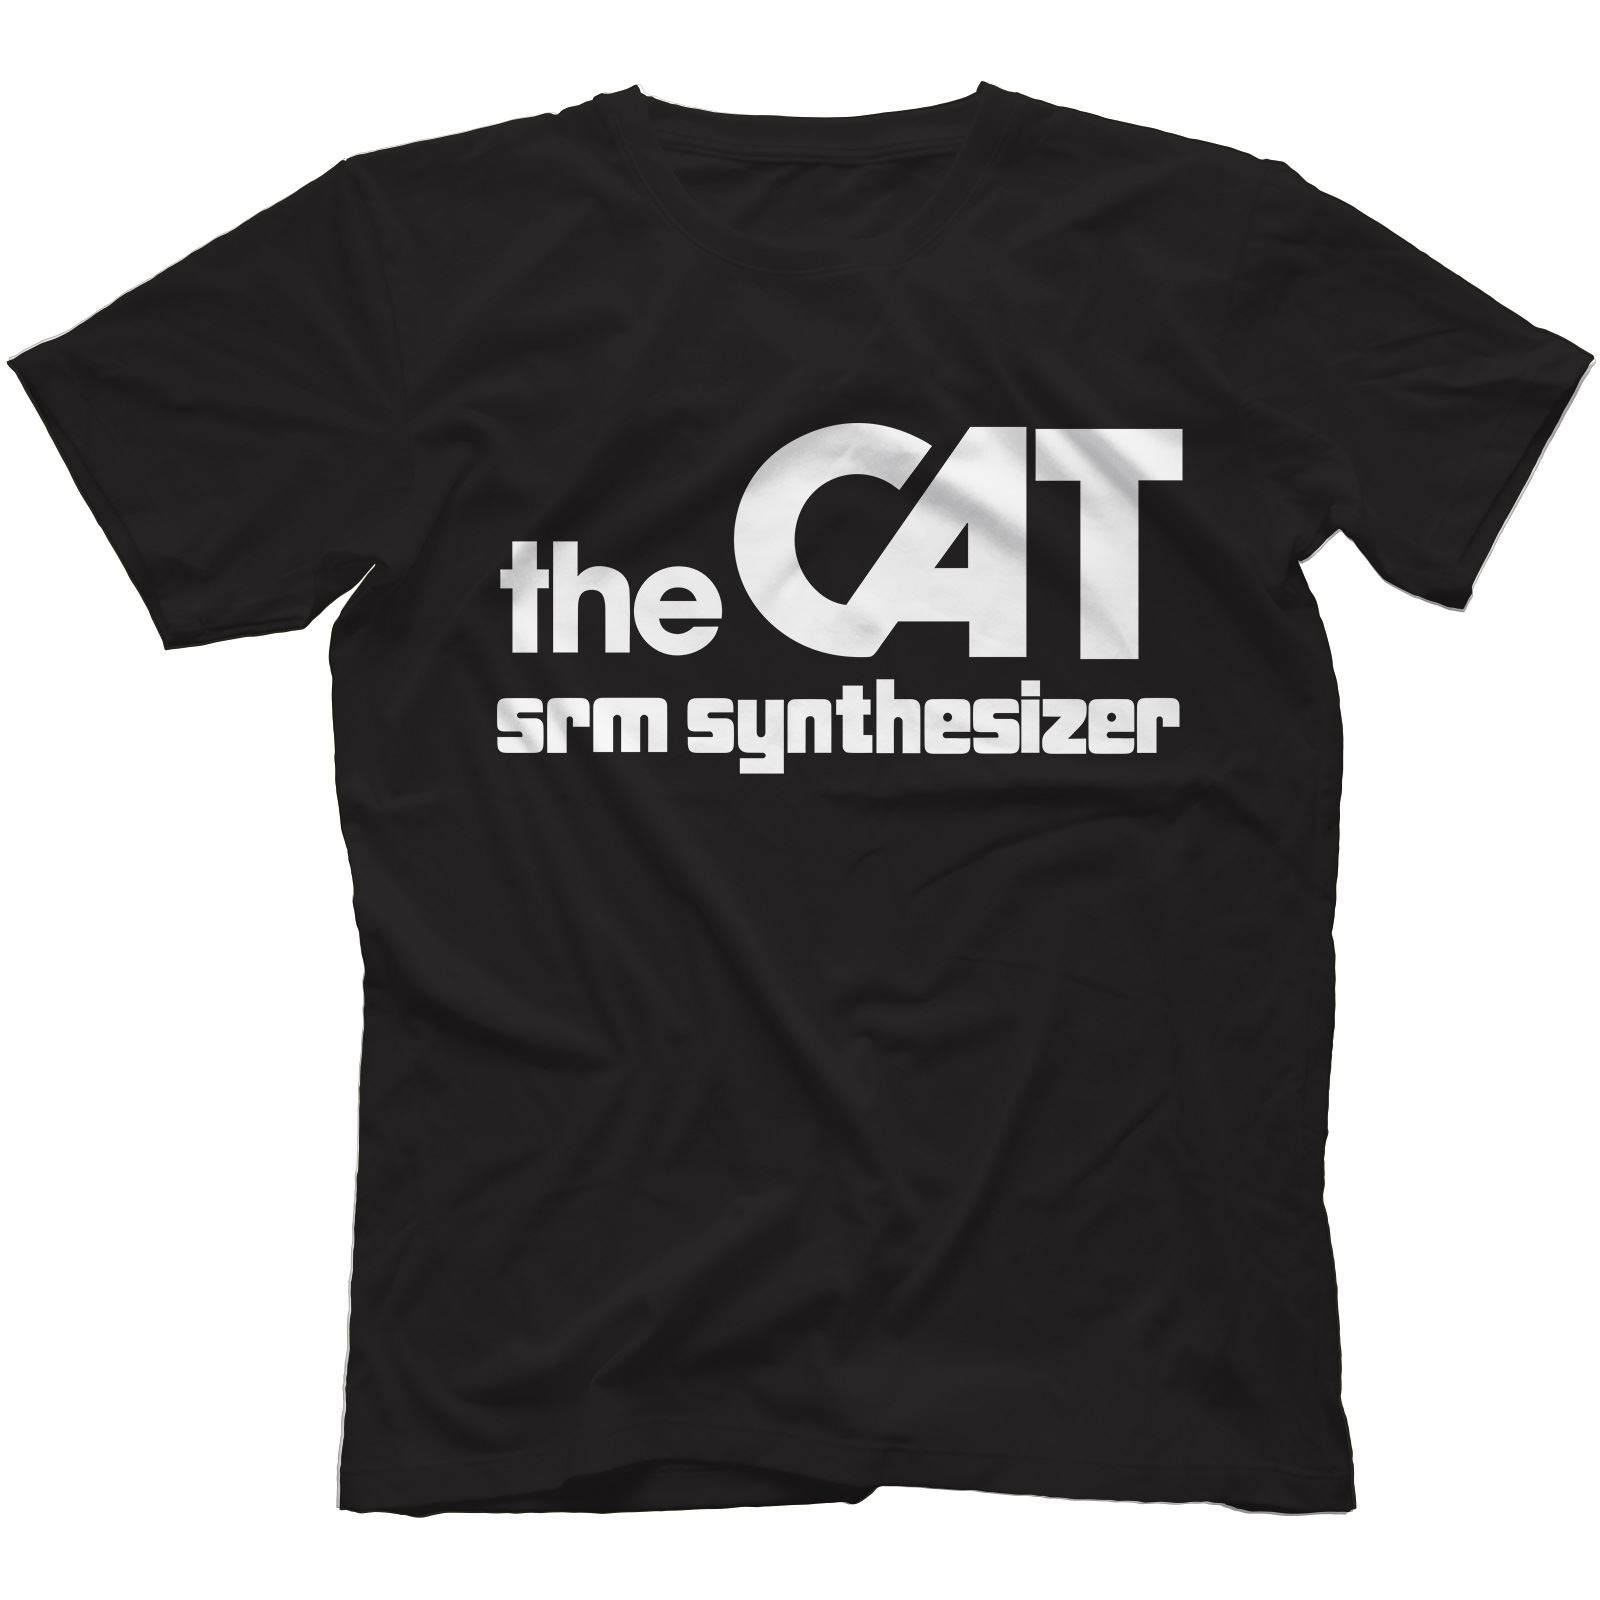 The-Cat-SRM-Synthesiser-T-Shirt-100-Cotton-Retro-Analog-Arp-Odyssey Indexbild 9